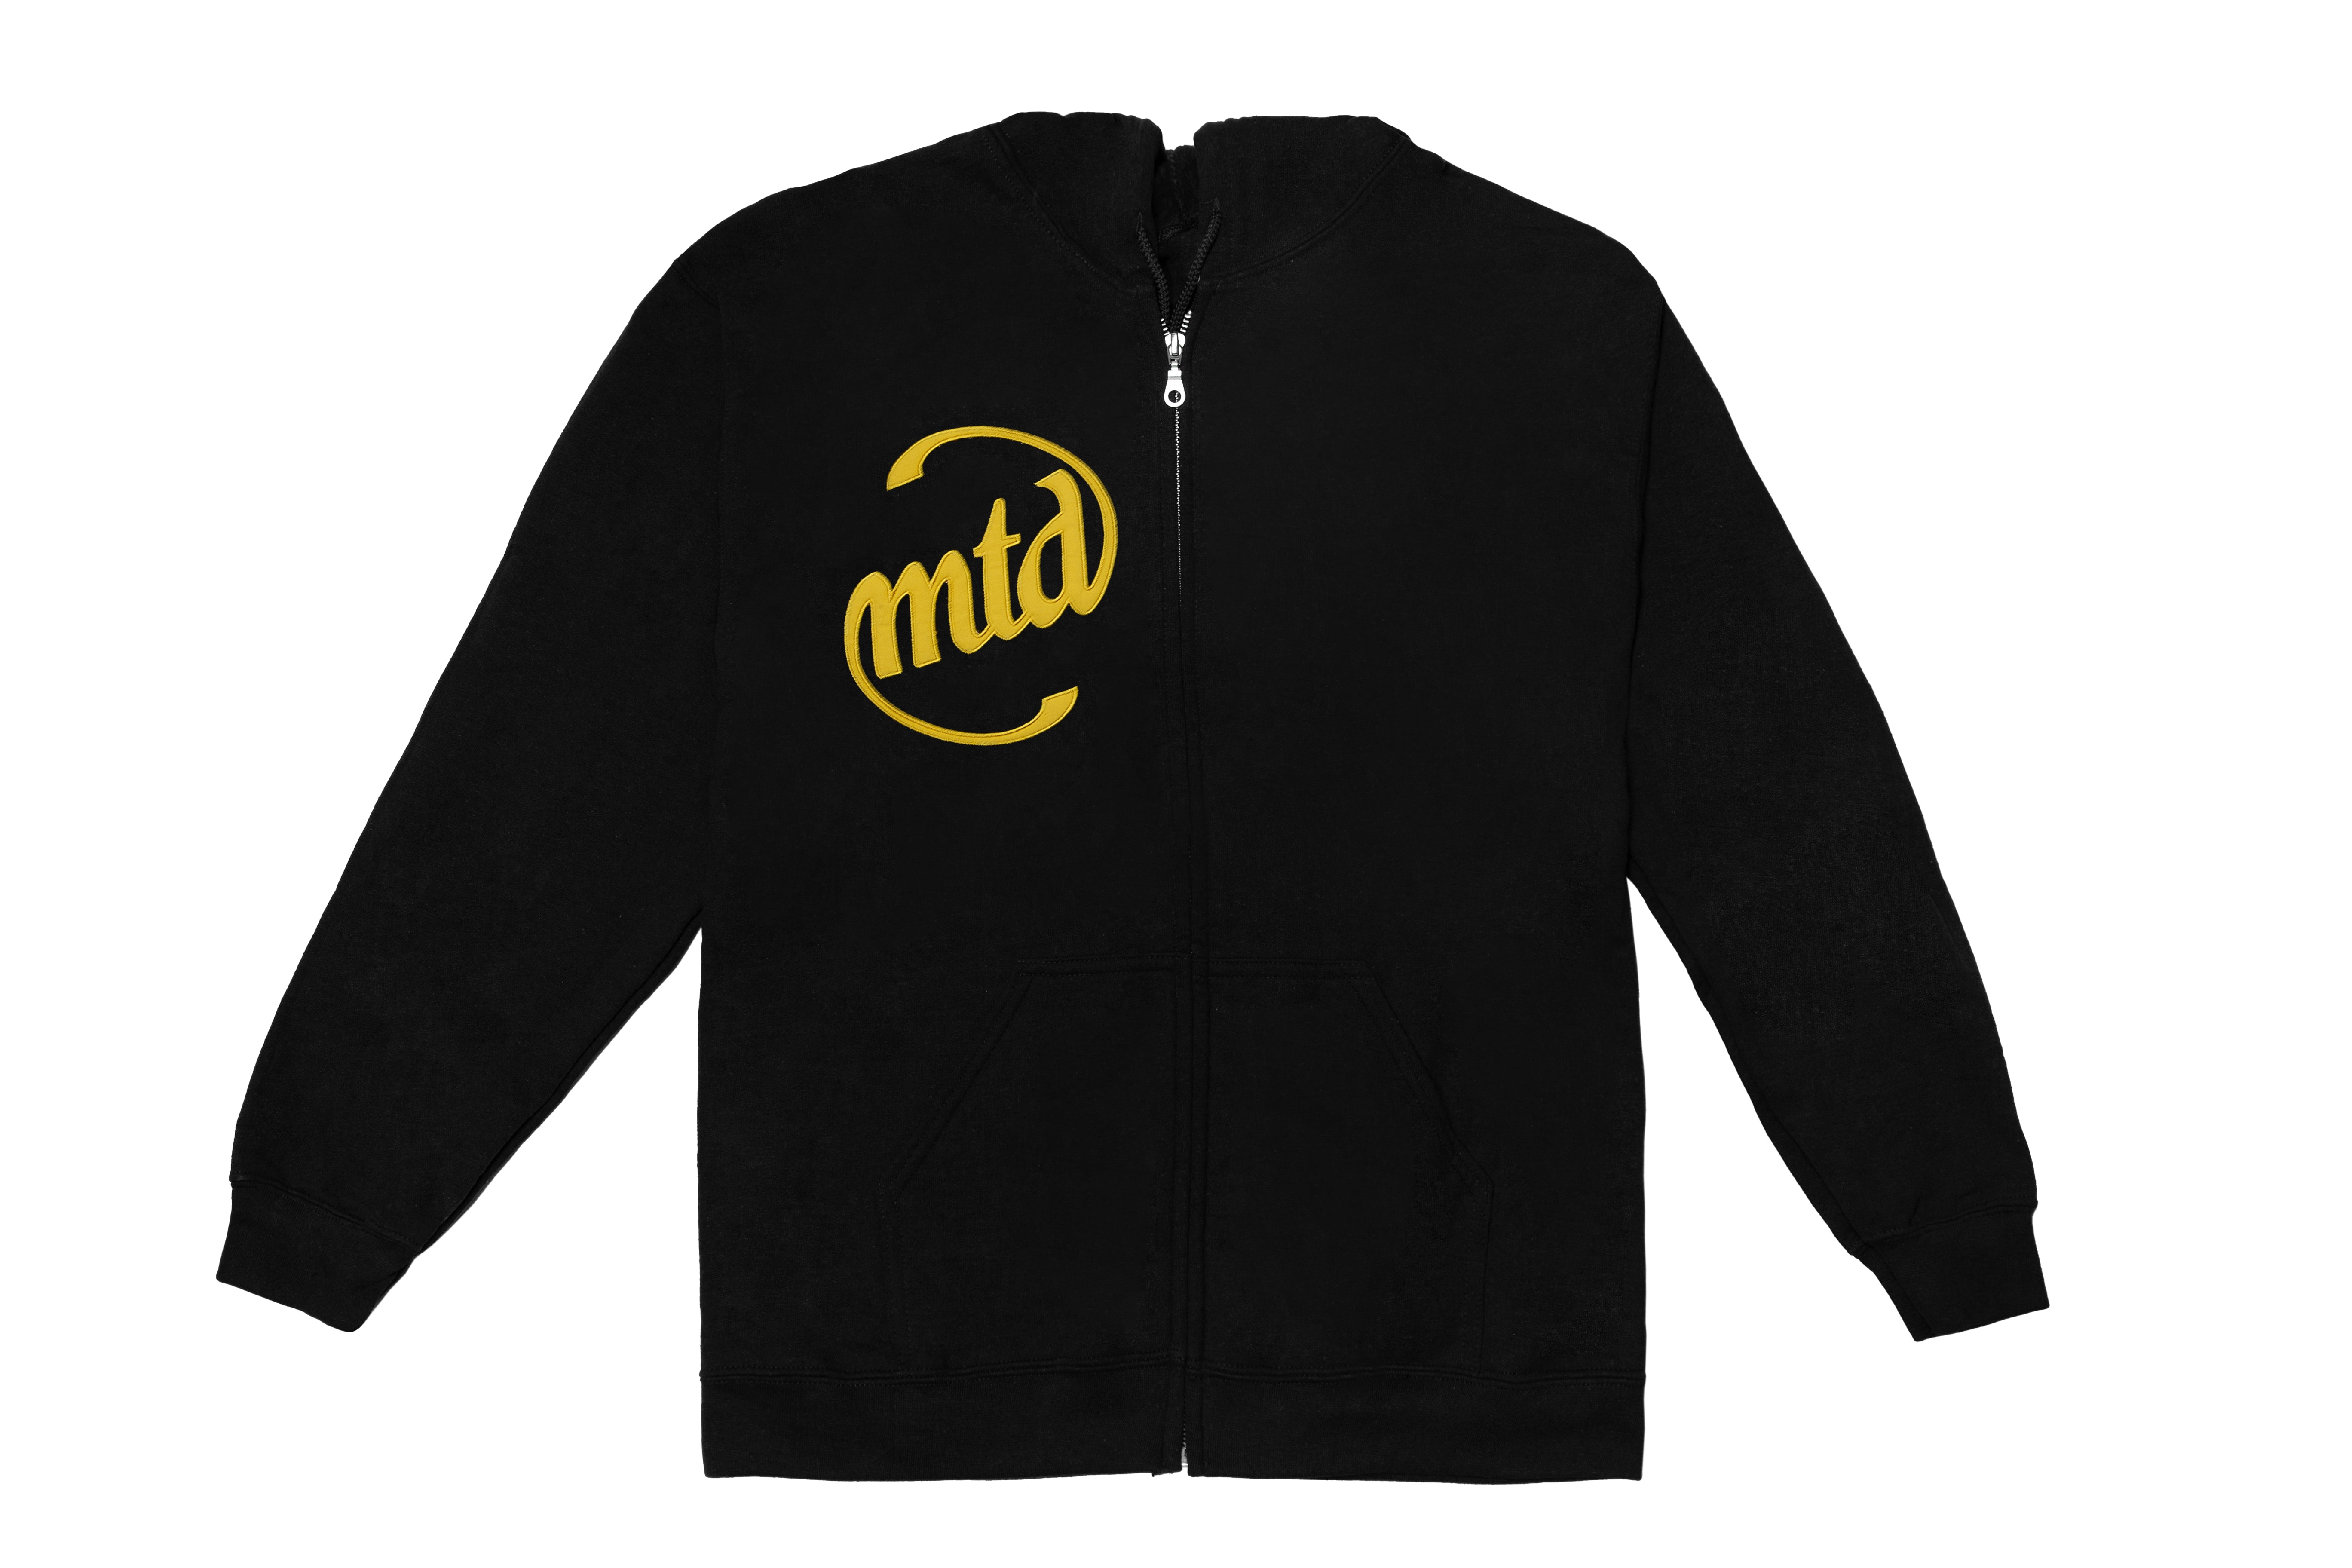 MTD BLACK ZIP - GOLD EMBROIDERED LOGO 1 HOODY